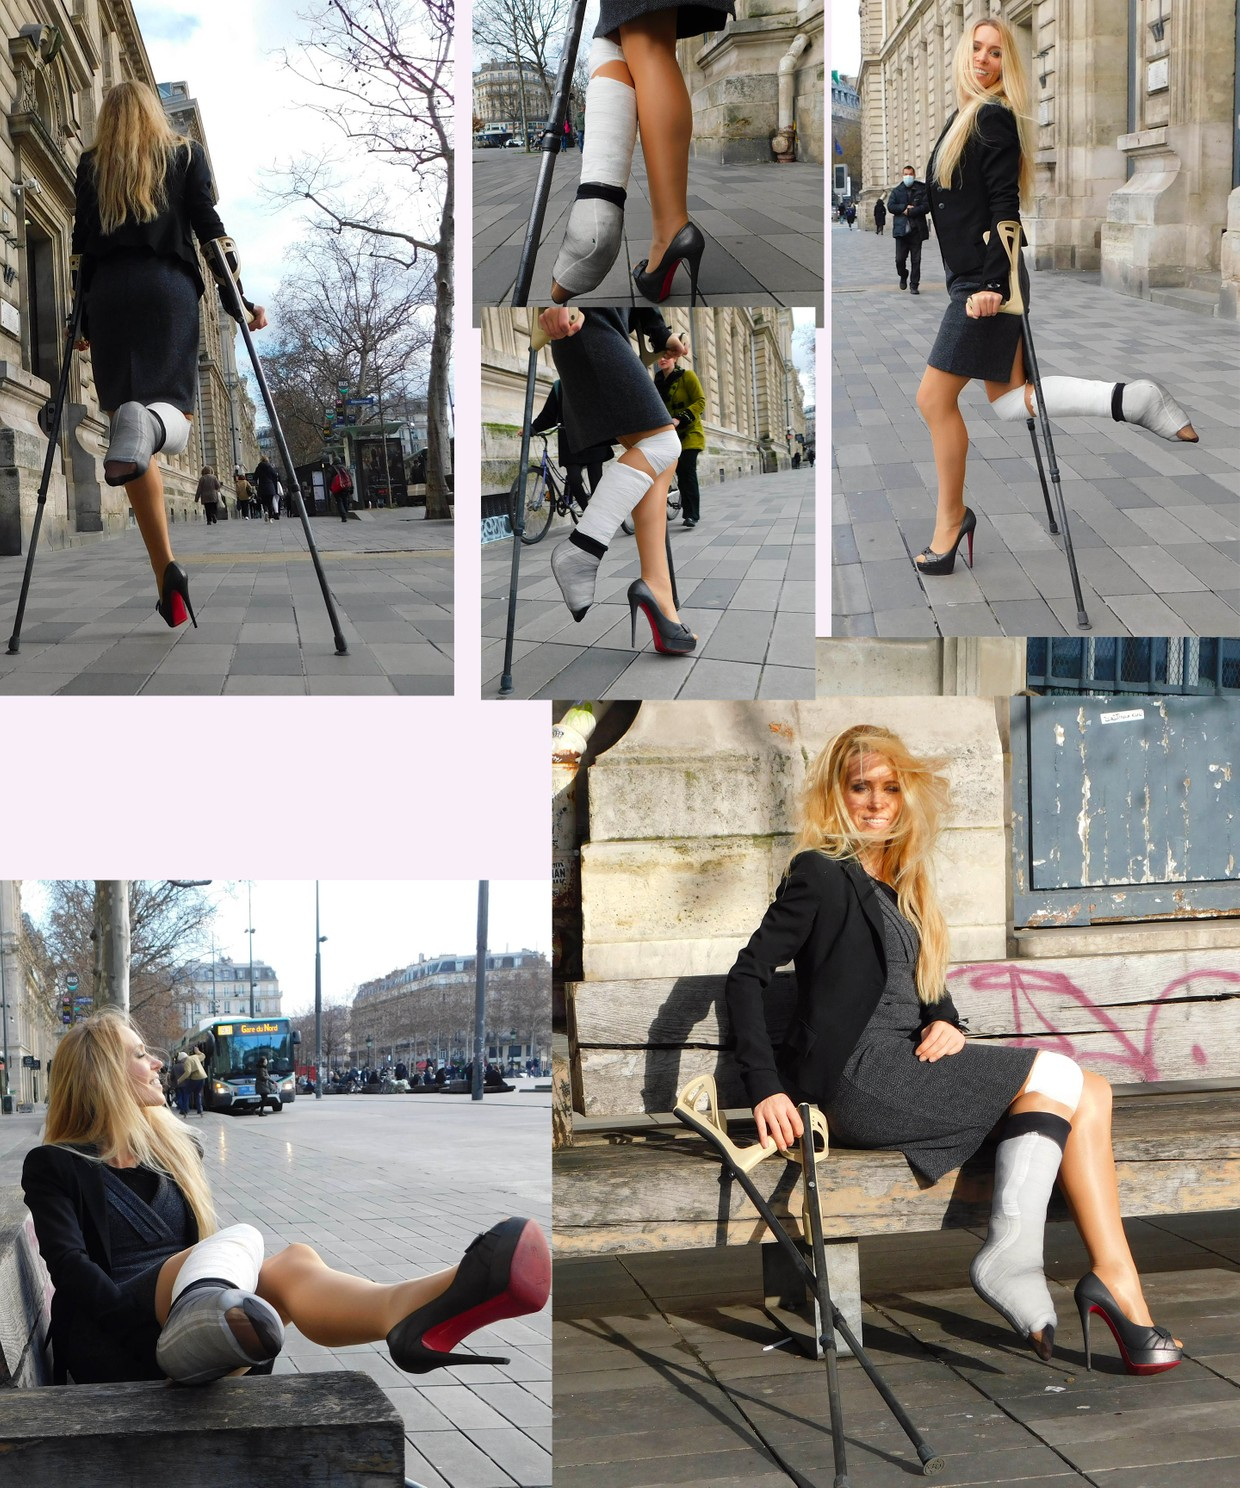 Castlinda, Jolie Modling - her right leg is fixed in a pointed position in a white plaster cast, on her left foot a high heeled pump - on the go with crutches